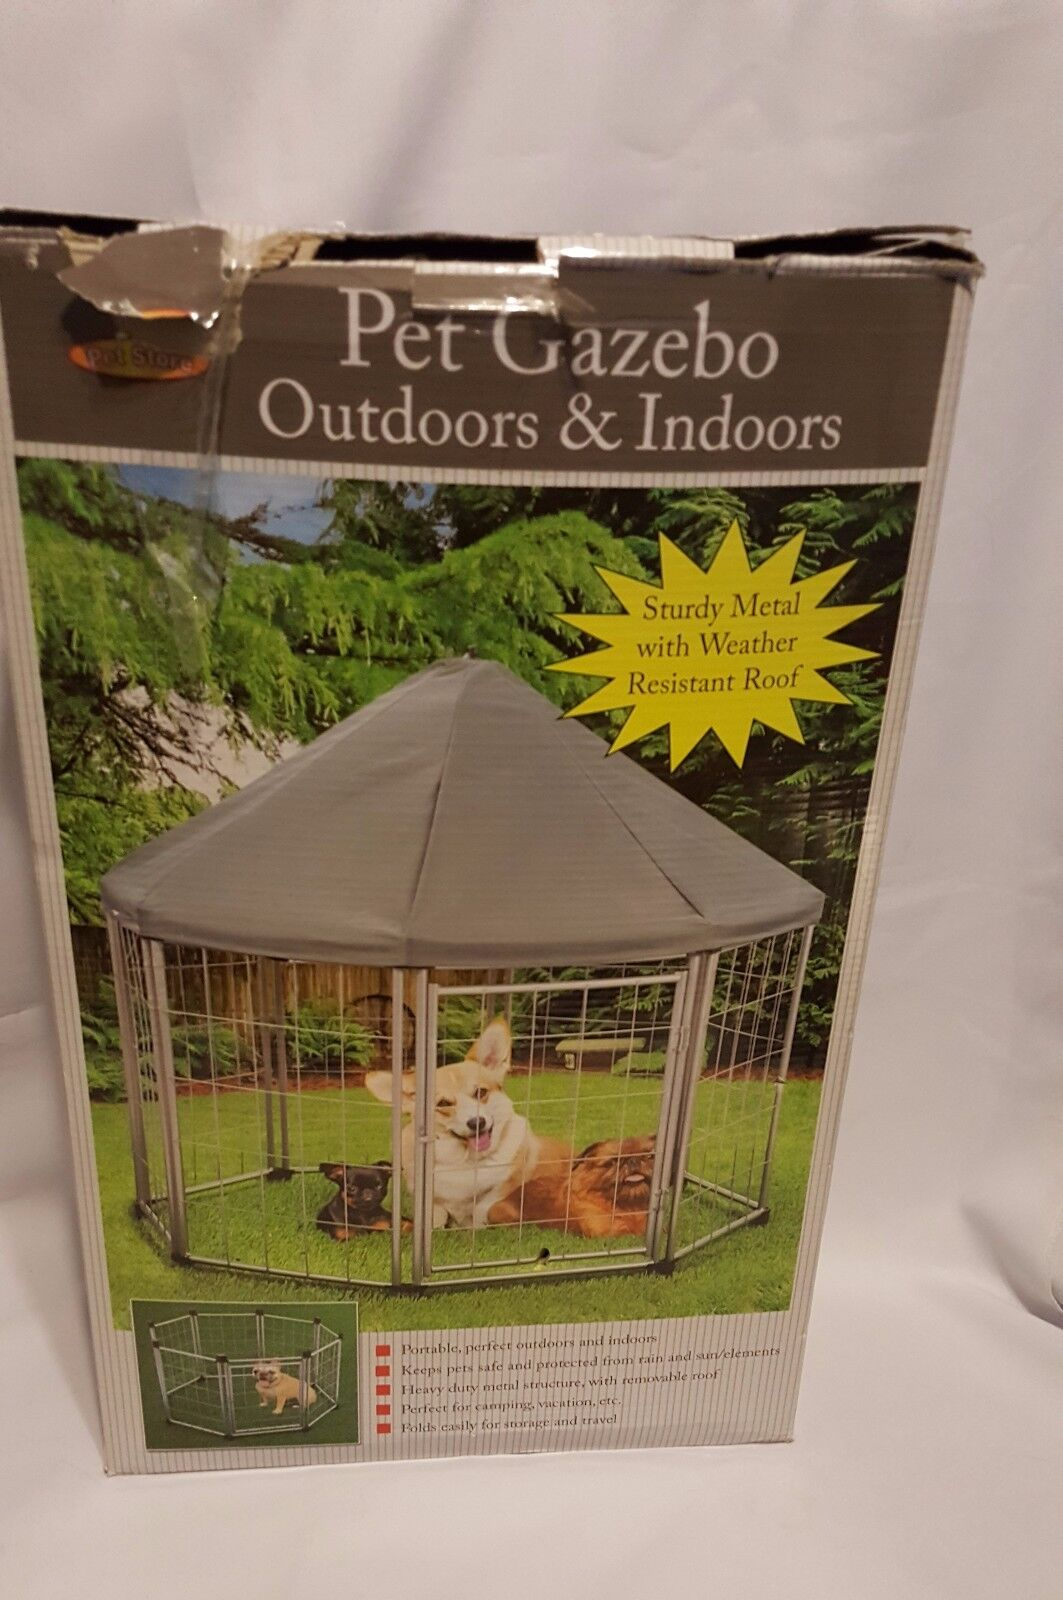 Pet Gazebo Outdoors and Indoors